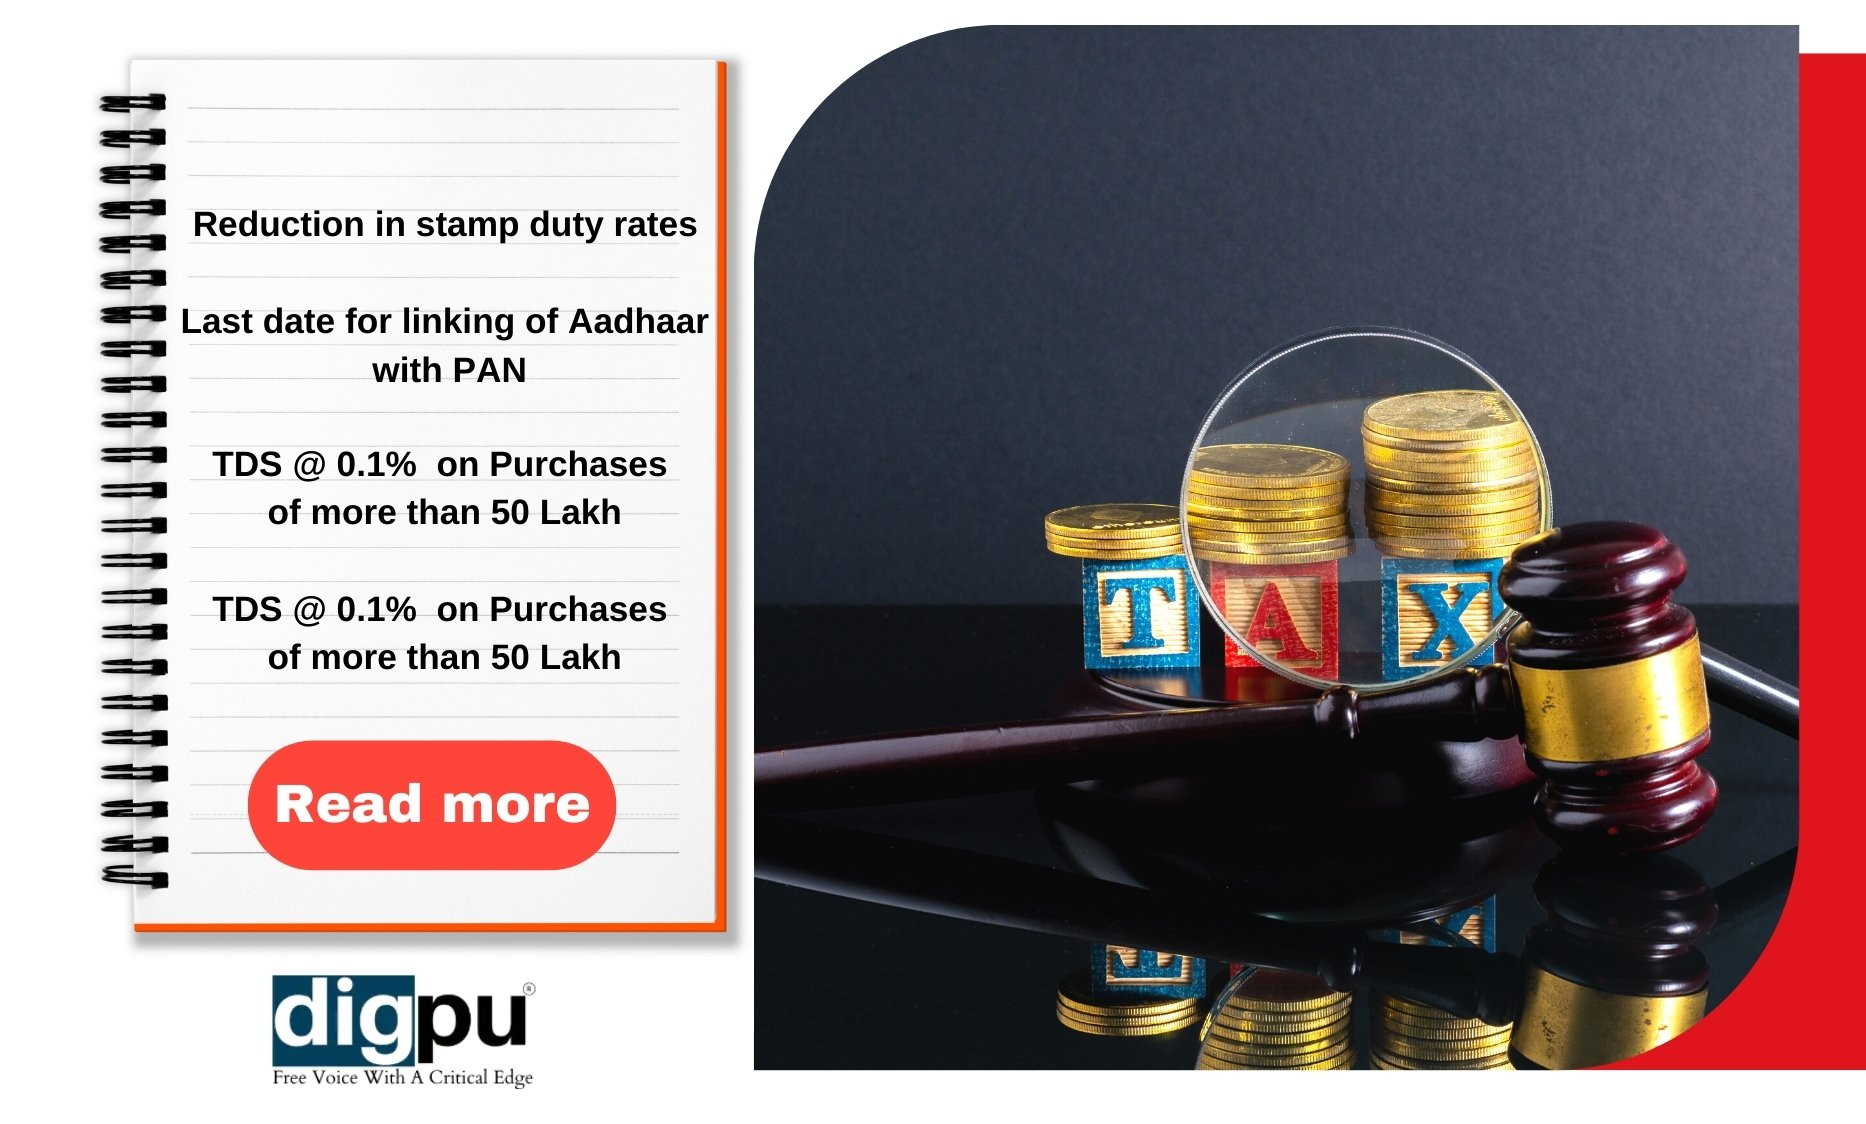 New Amendments in Income Tax, GST, Company Laws from 1st April, 2021